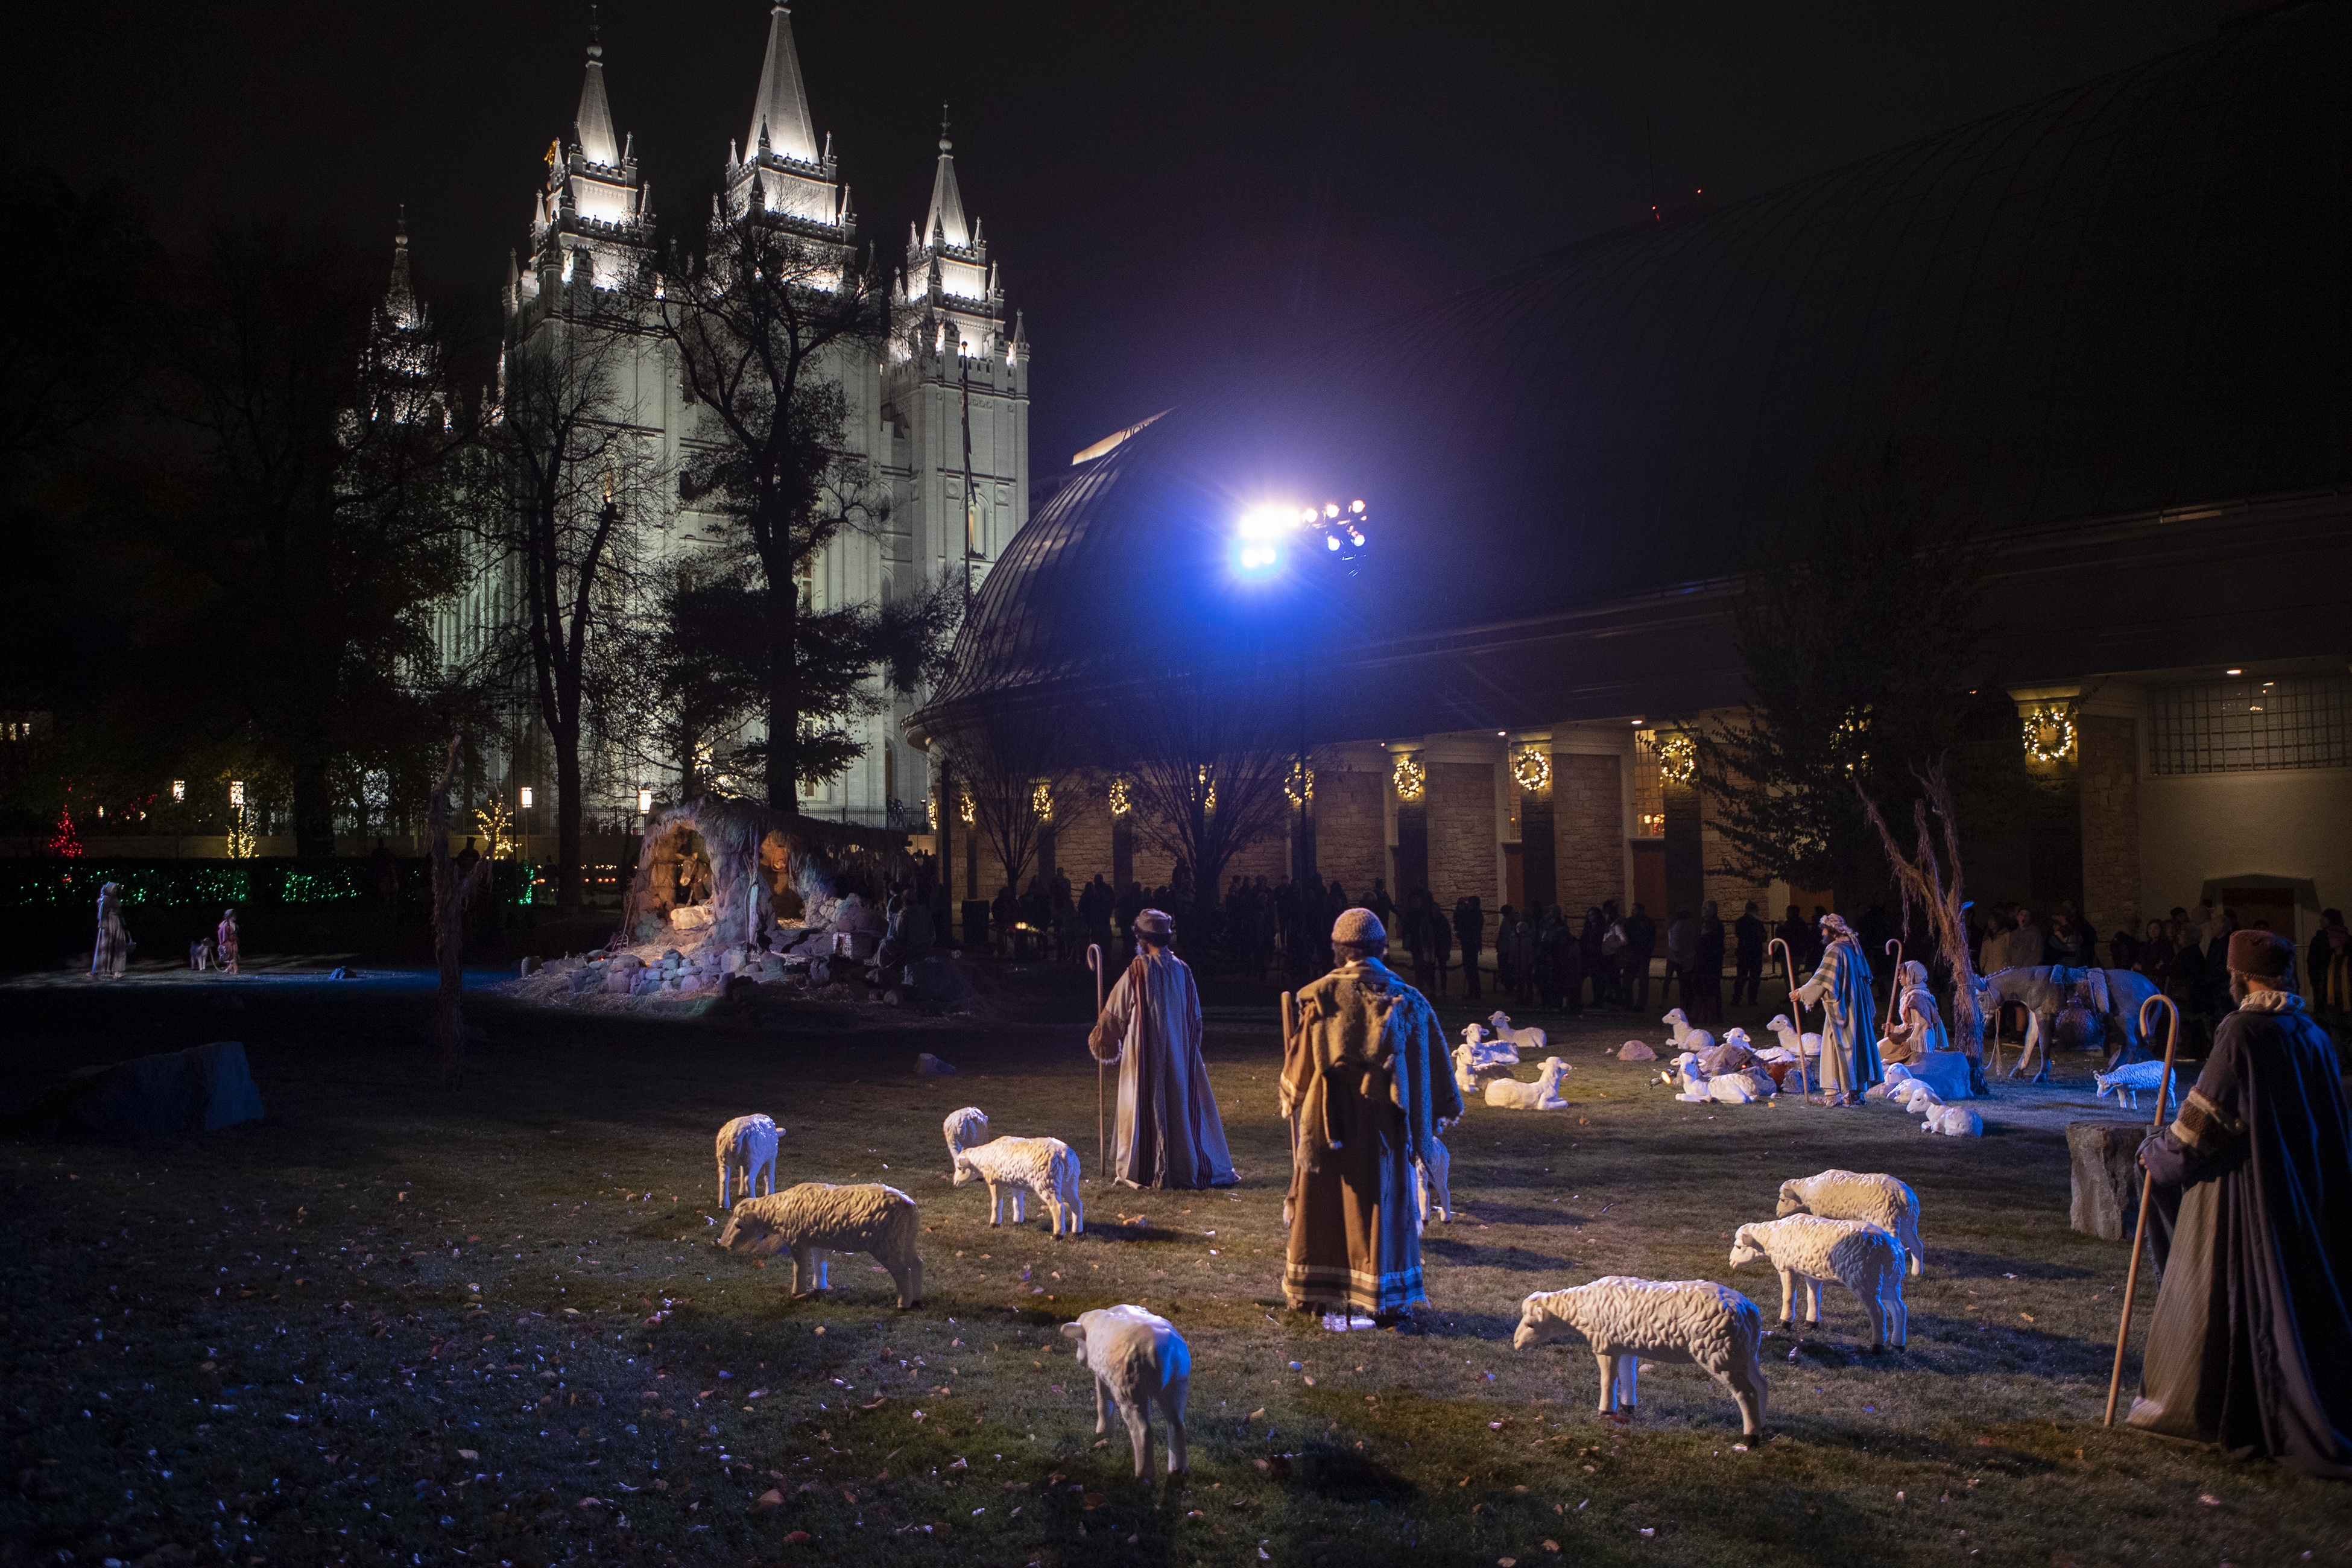 The Nativity story is told on the grass as thousands take in the colors as the lights are turned on at Temple Square in Salt Lake City on Friday, Nov. 23, 2018.